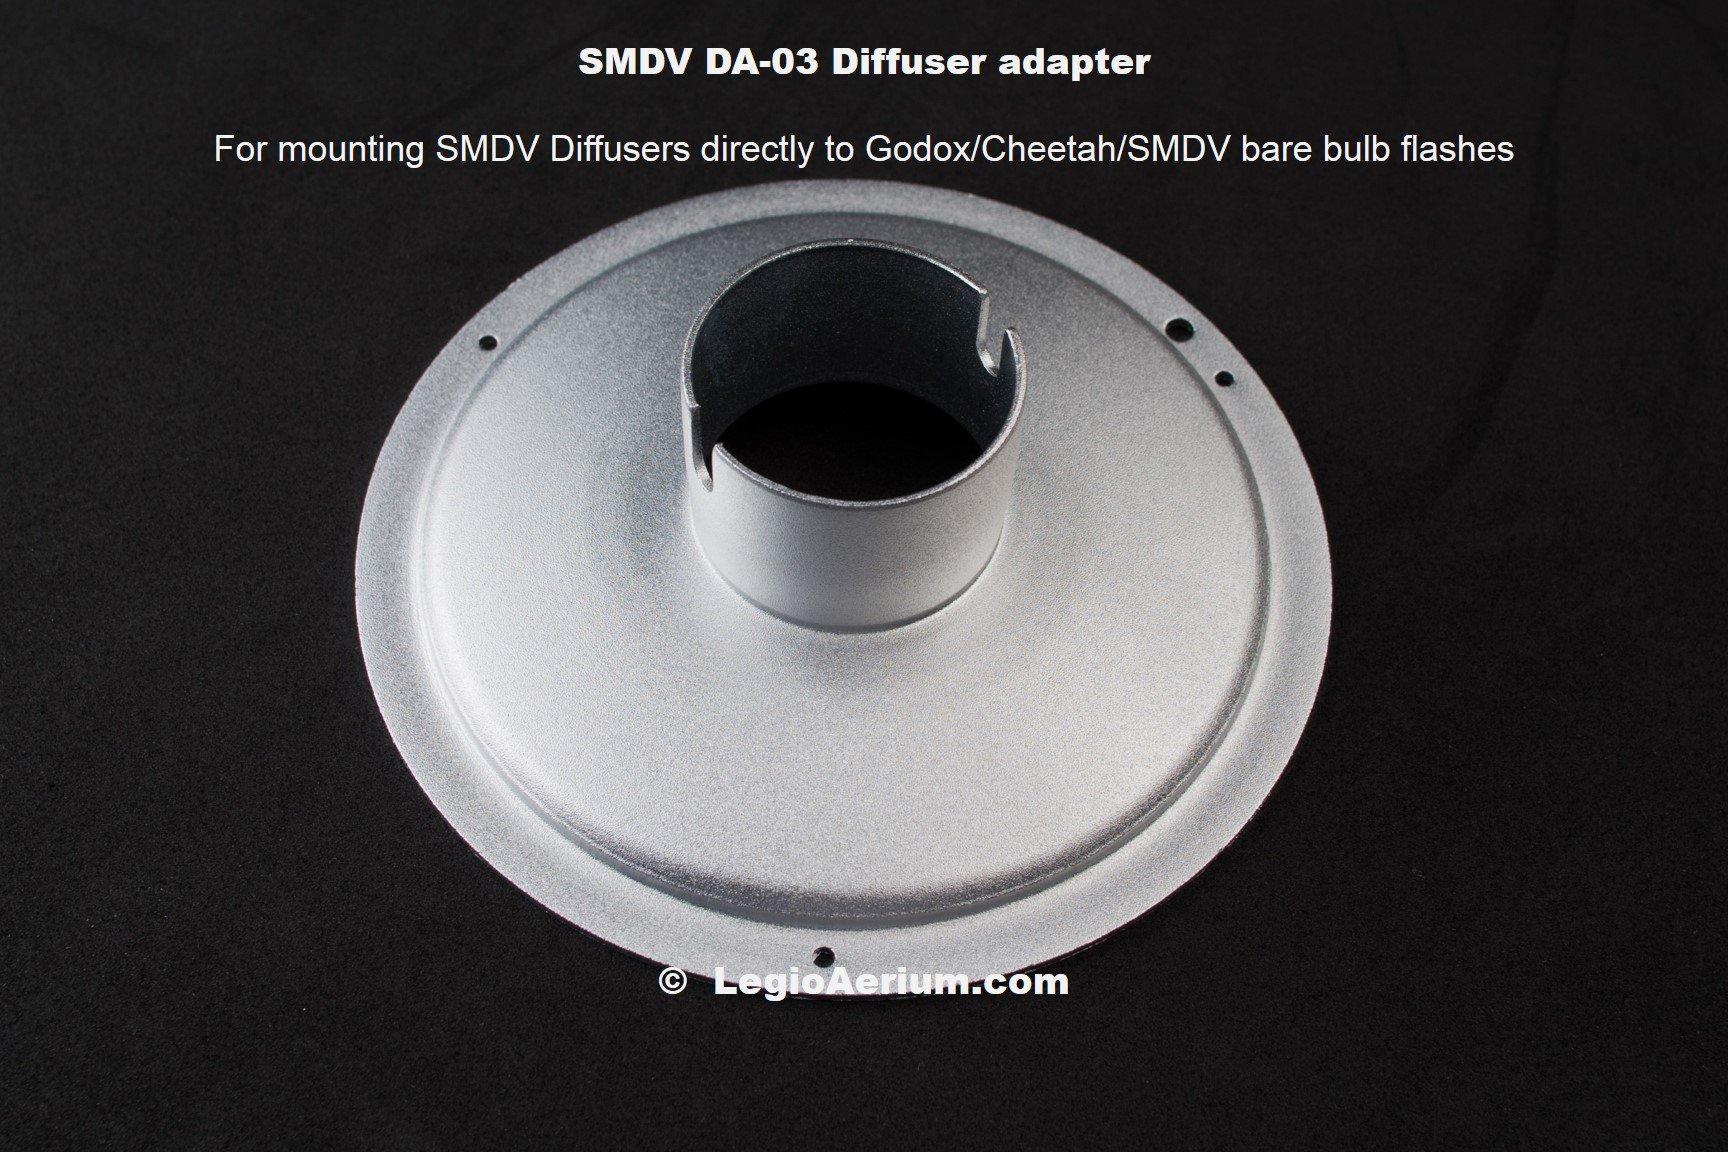 SMDV DA-03 adapter for Speedbox Diffusers and Godox Wistro AD-180, AD-360, Cheetah Light CL-180, CL-360, and SMDV bare bulb flashes